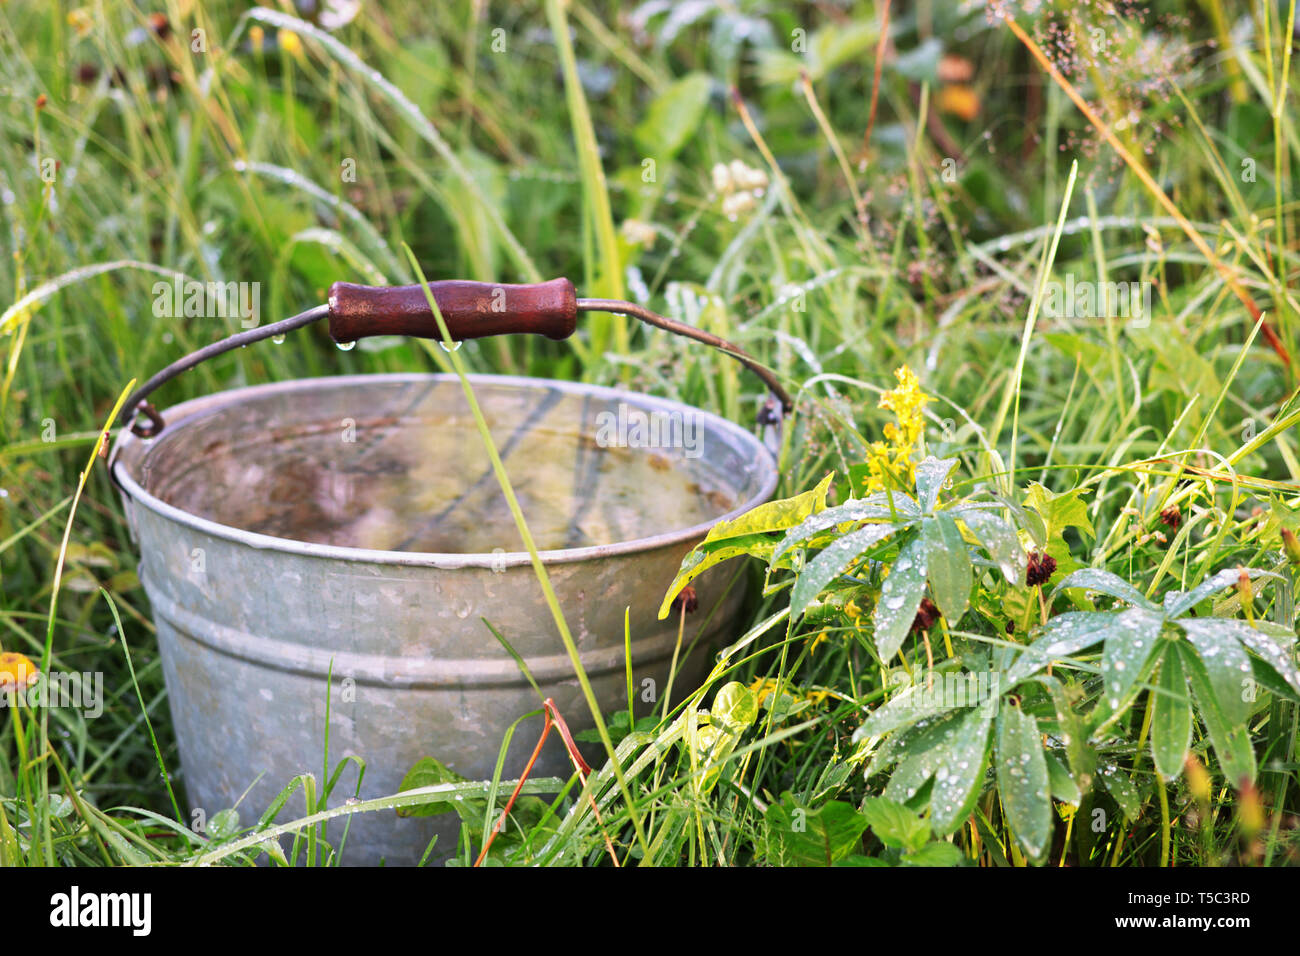 After summer rain. Rain water in the old galvanized iron busket among the high wet grass - Stock Image